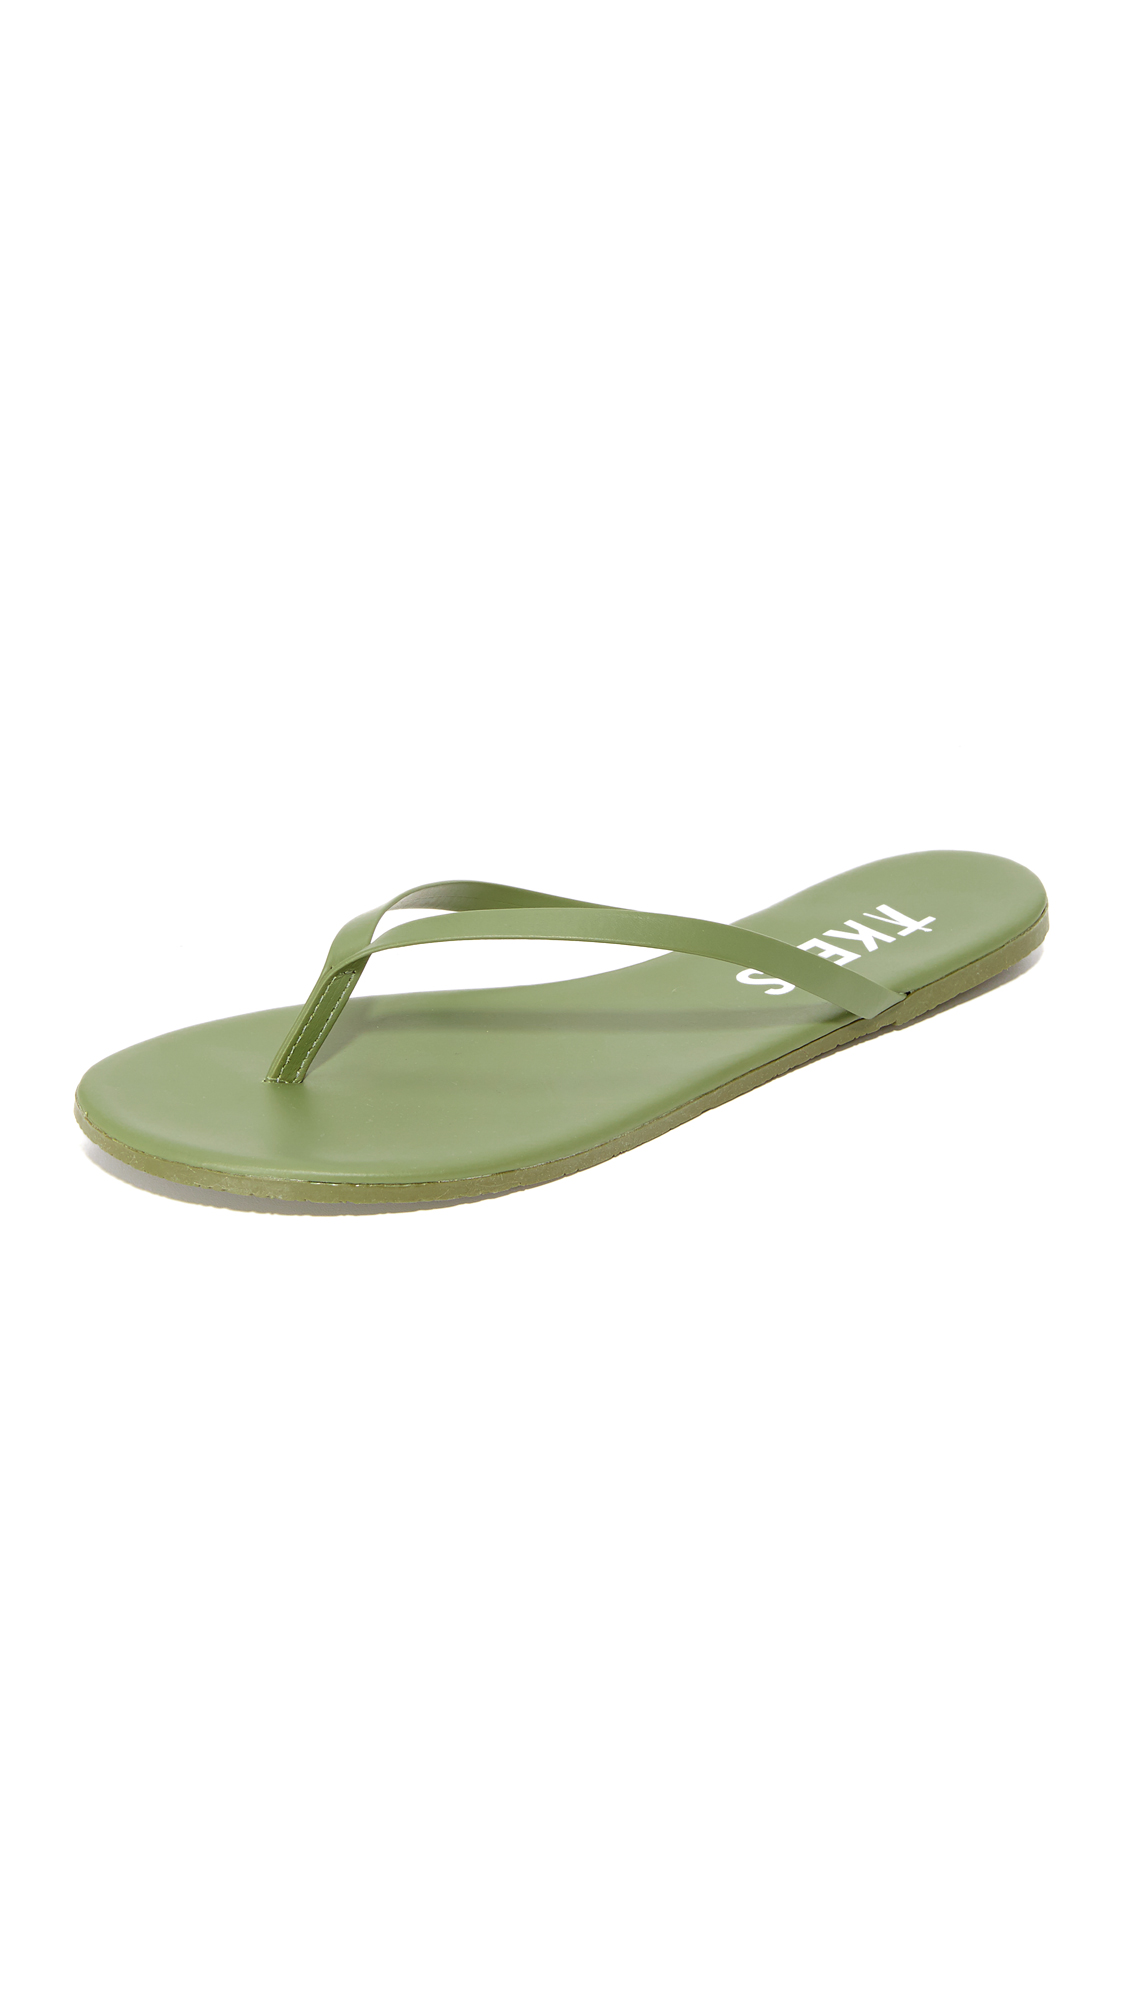 tkees female tkees solids flip flops no 10